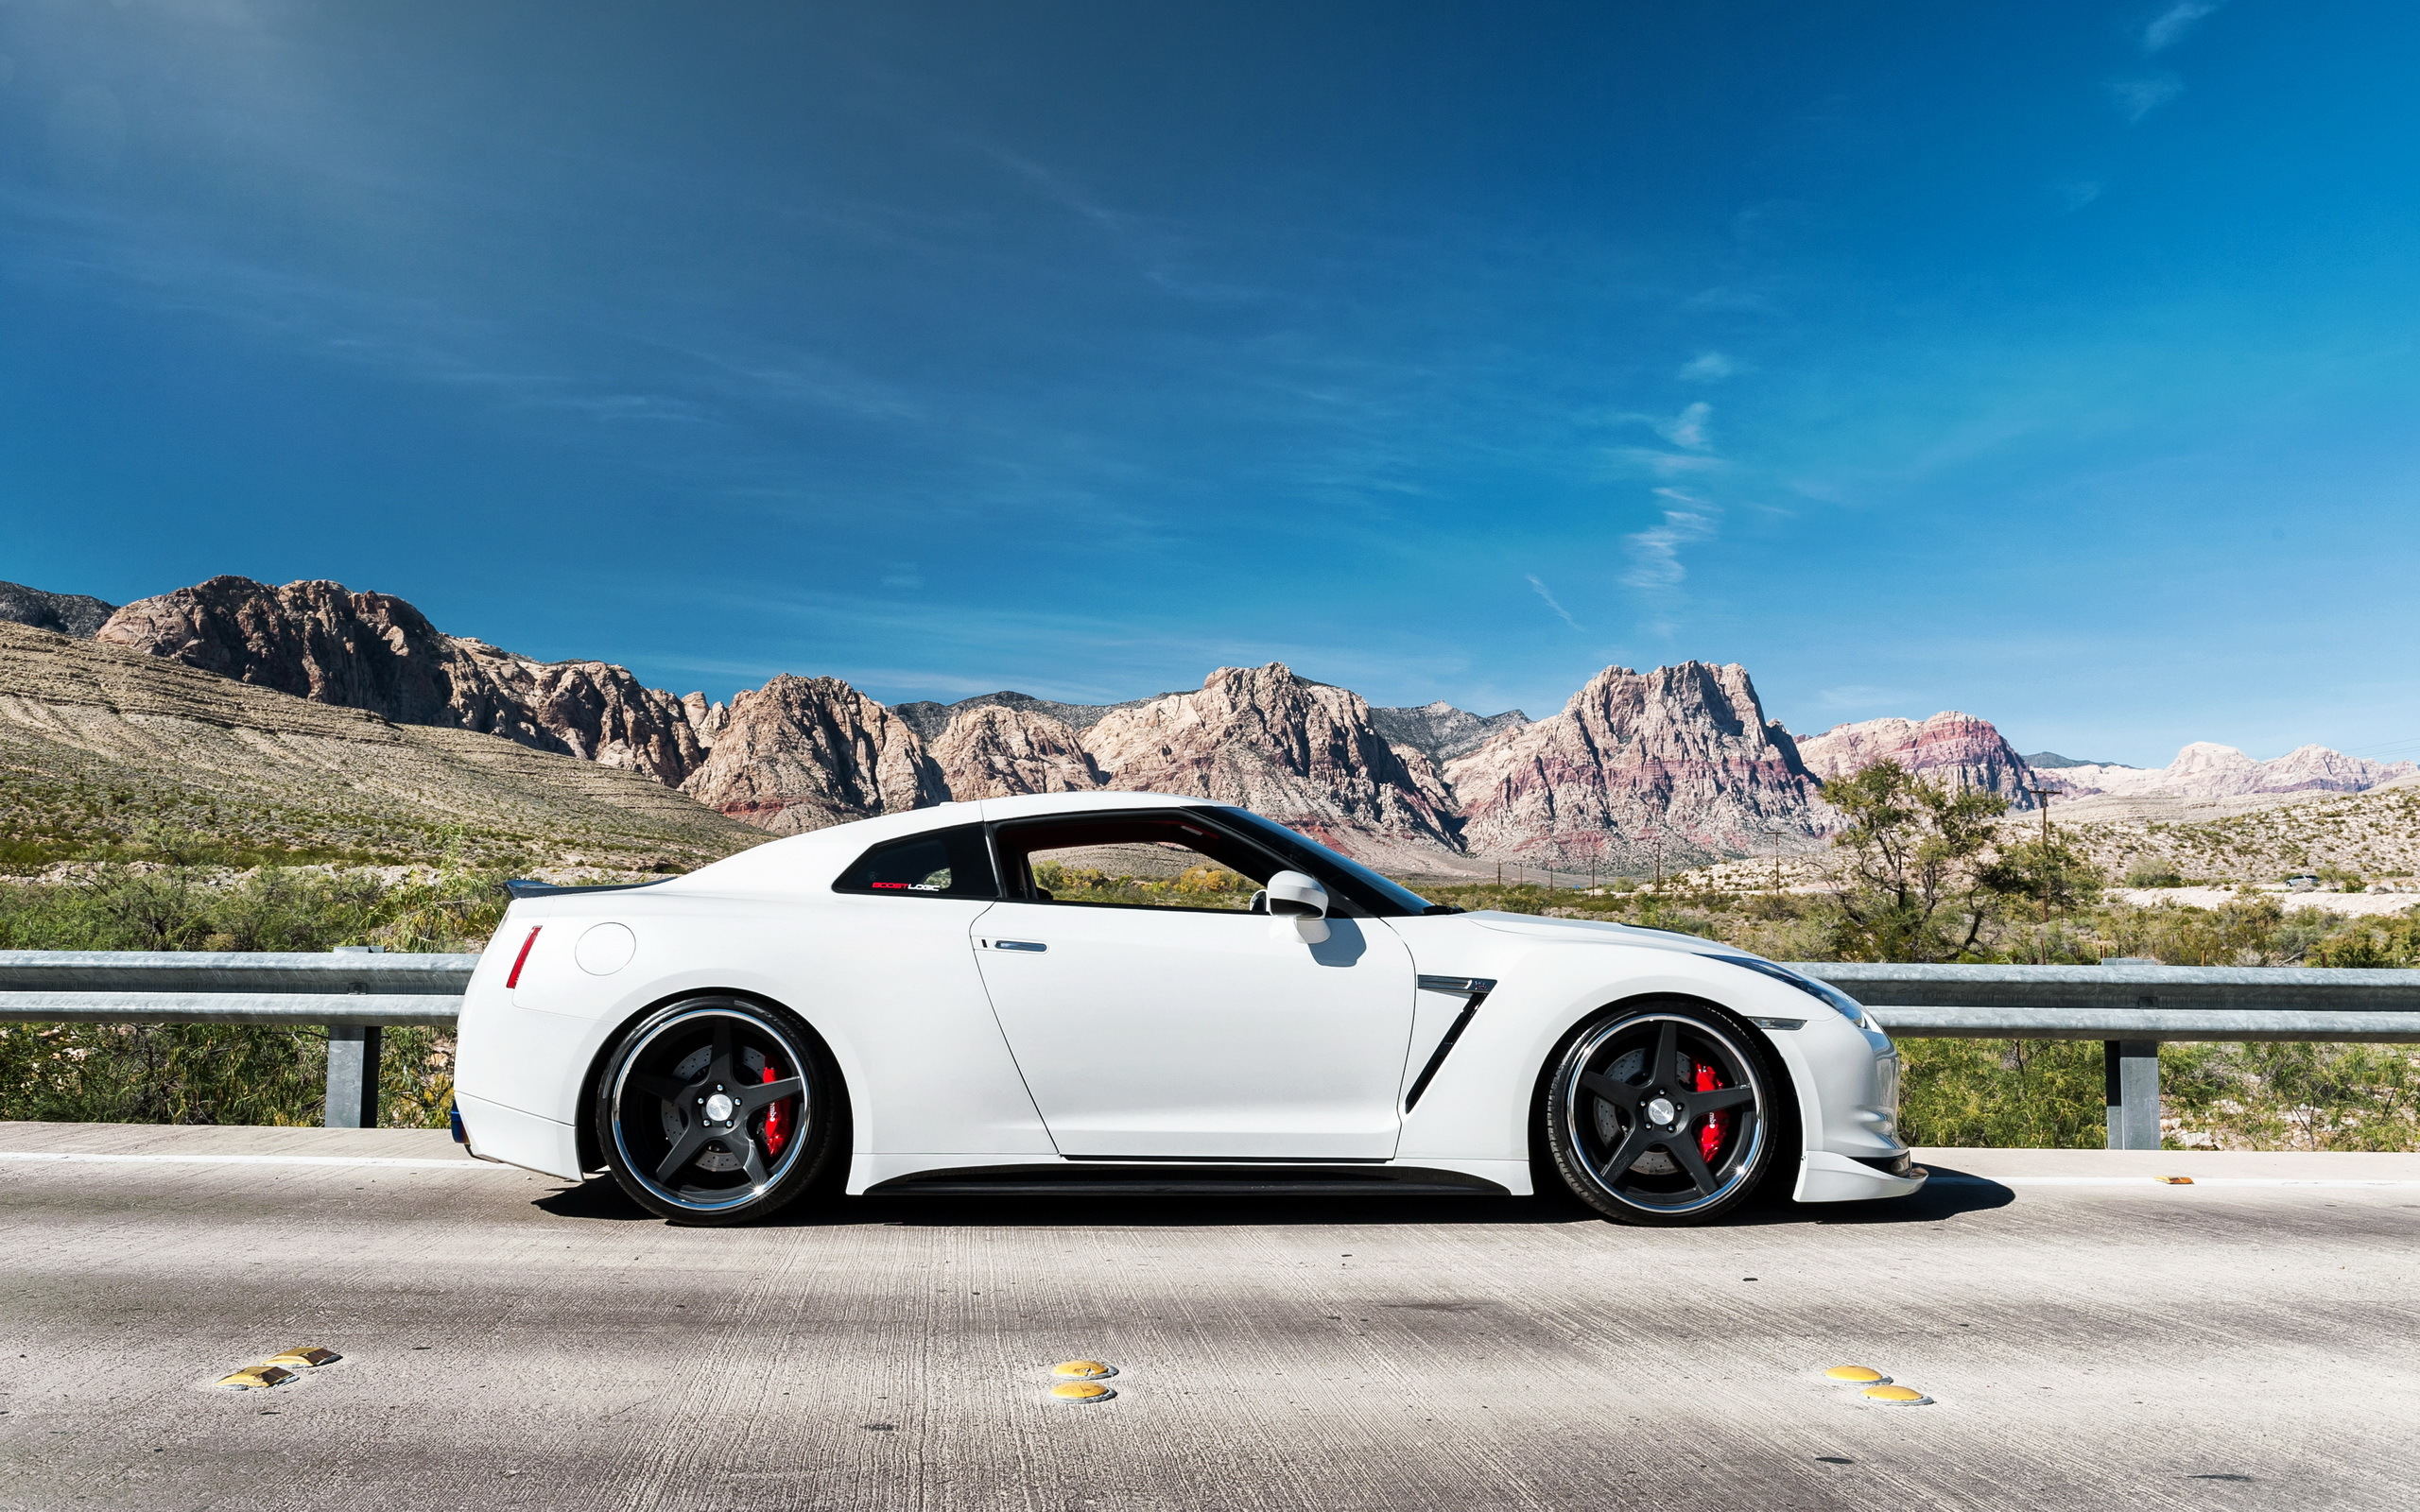 Beau Amazing Nissan GTR Car Wallpaper 45147